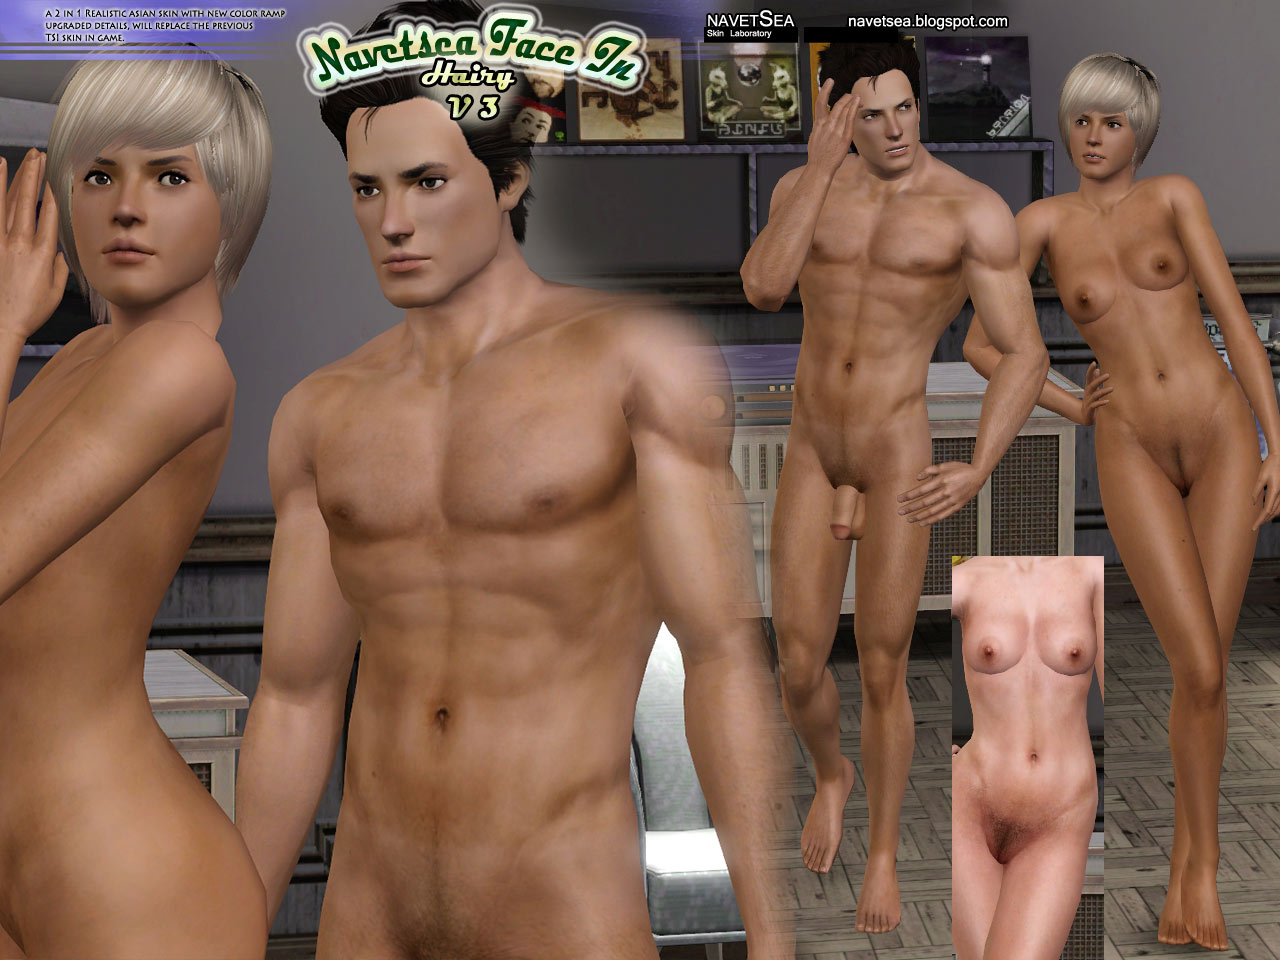 Sims 2 pc naked cheats pron film